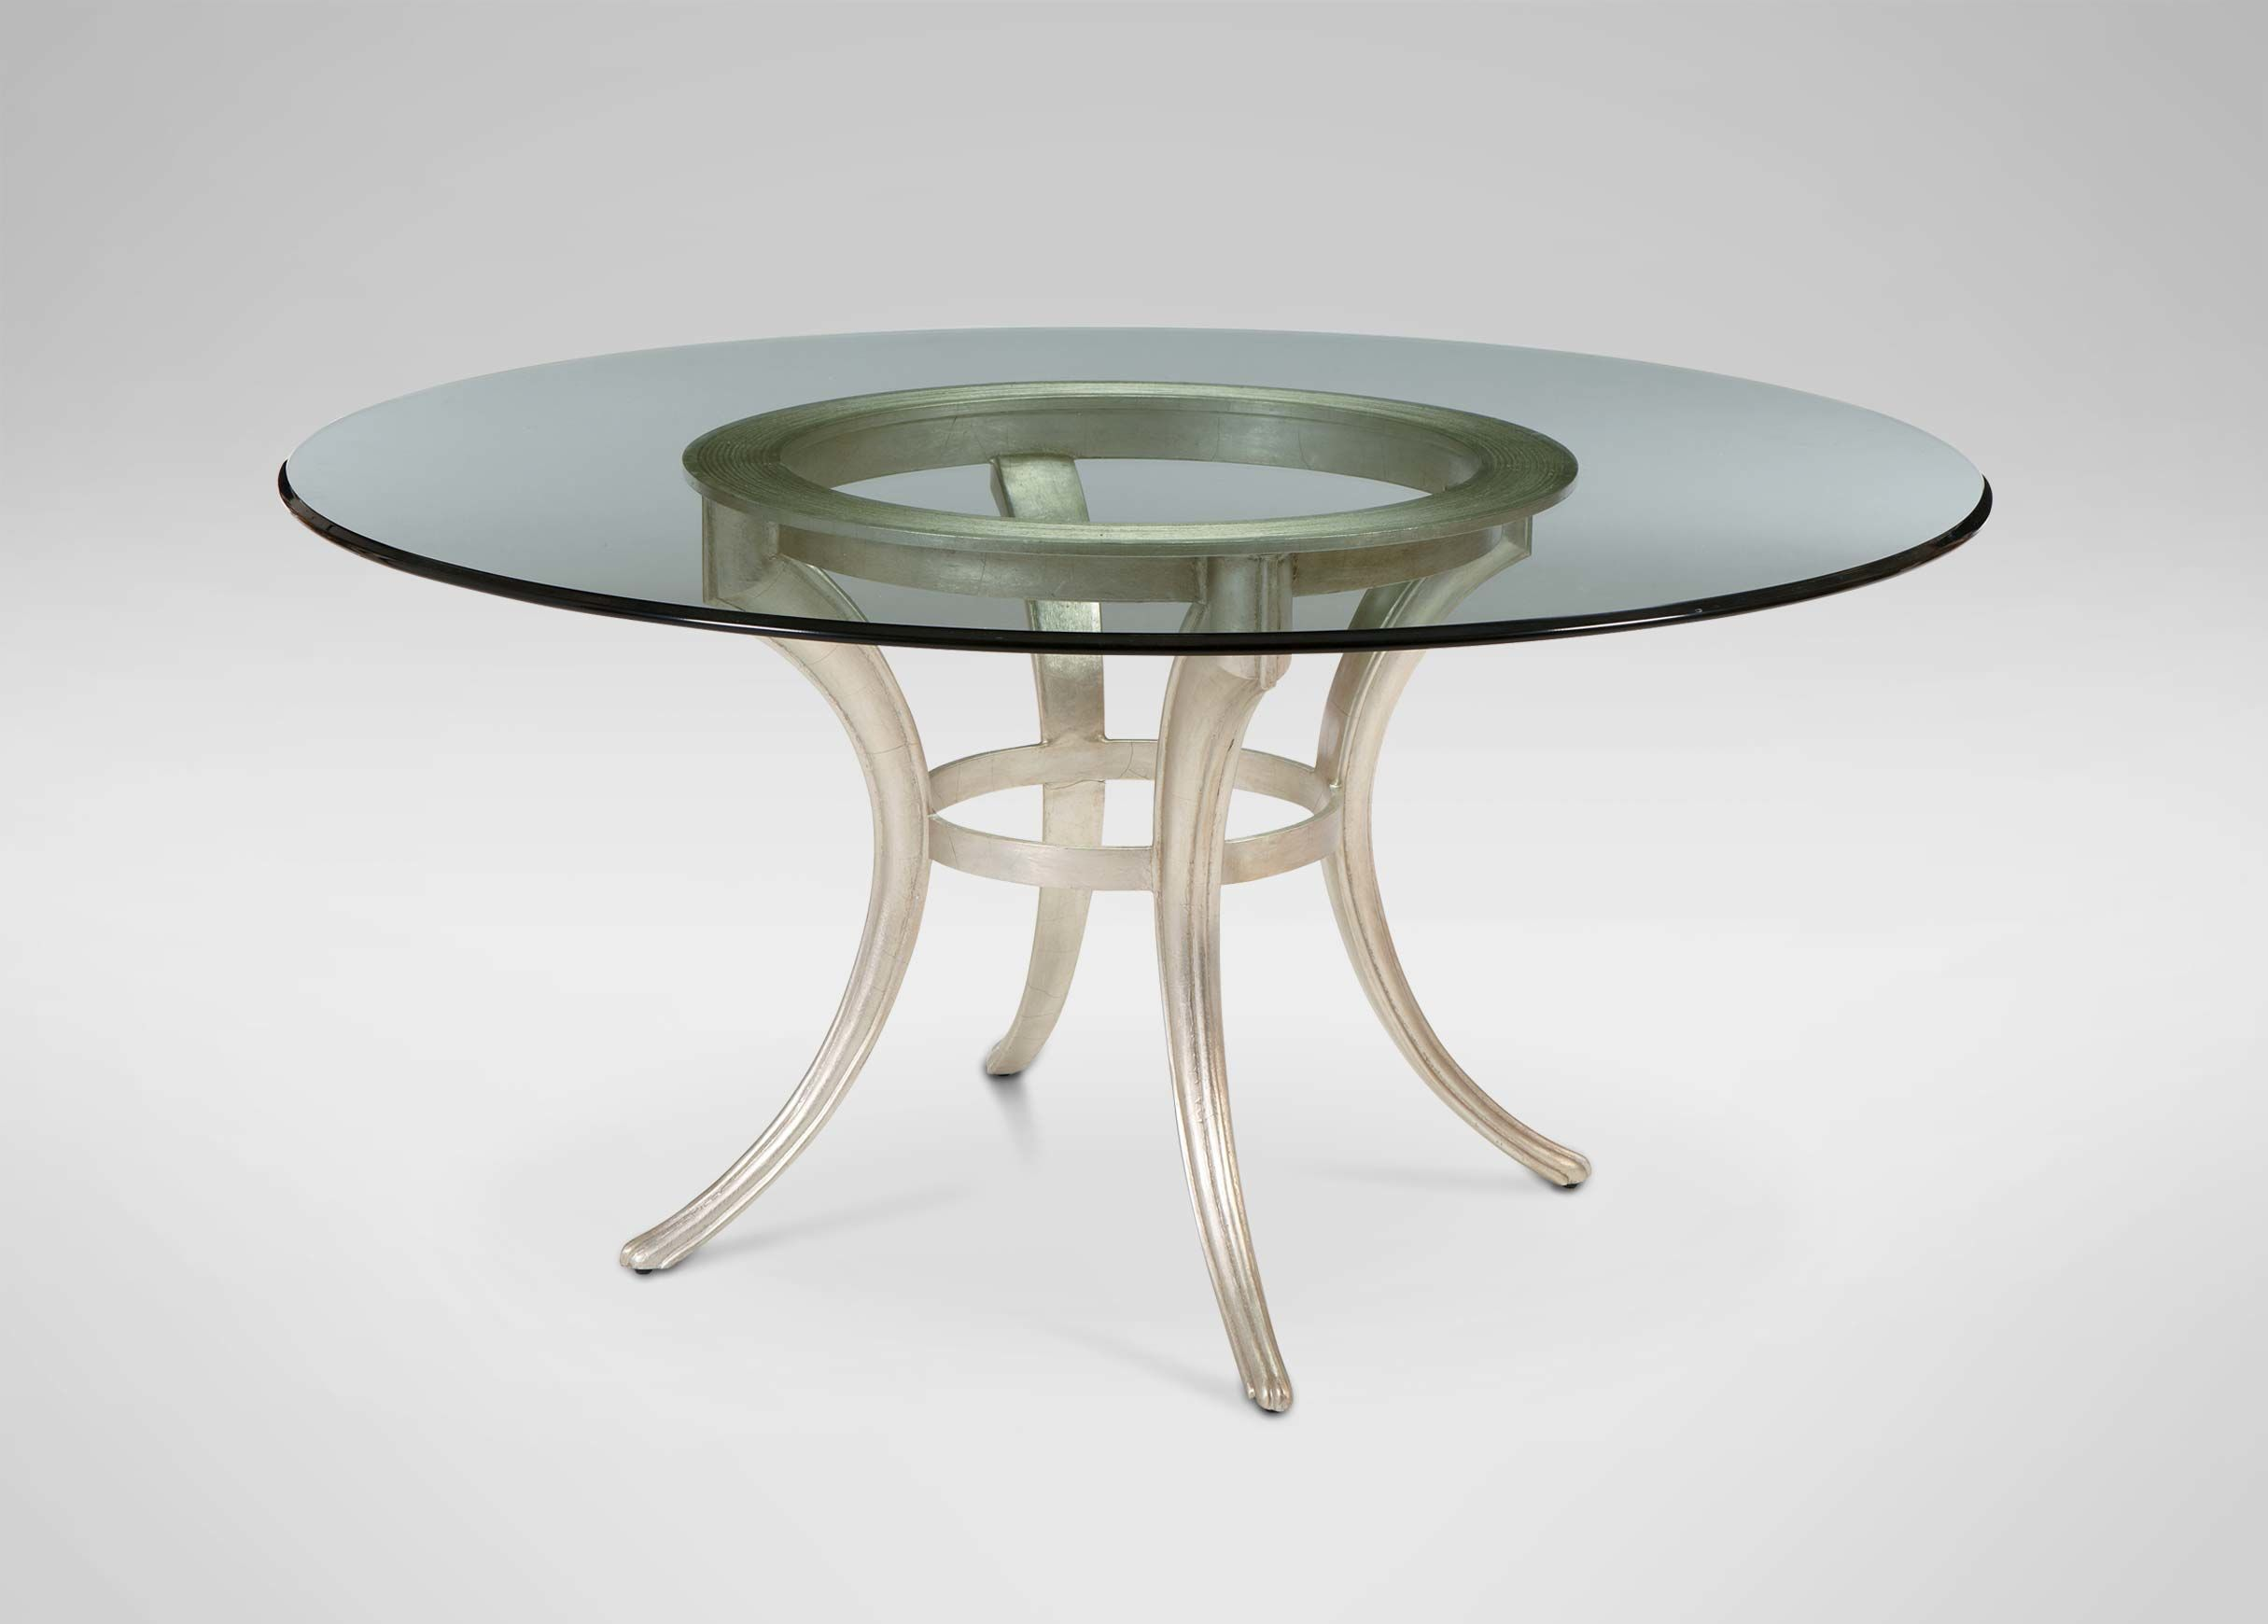 Boscobel Dining Table Dining Table Furniture Dining Room Table Glass Dining Table [ 1740 x 2430 Pixel ]